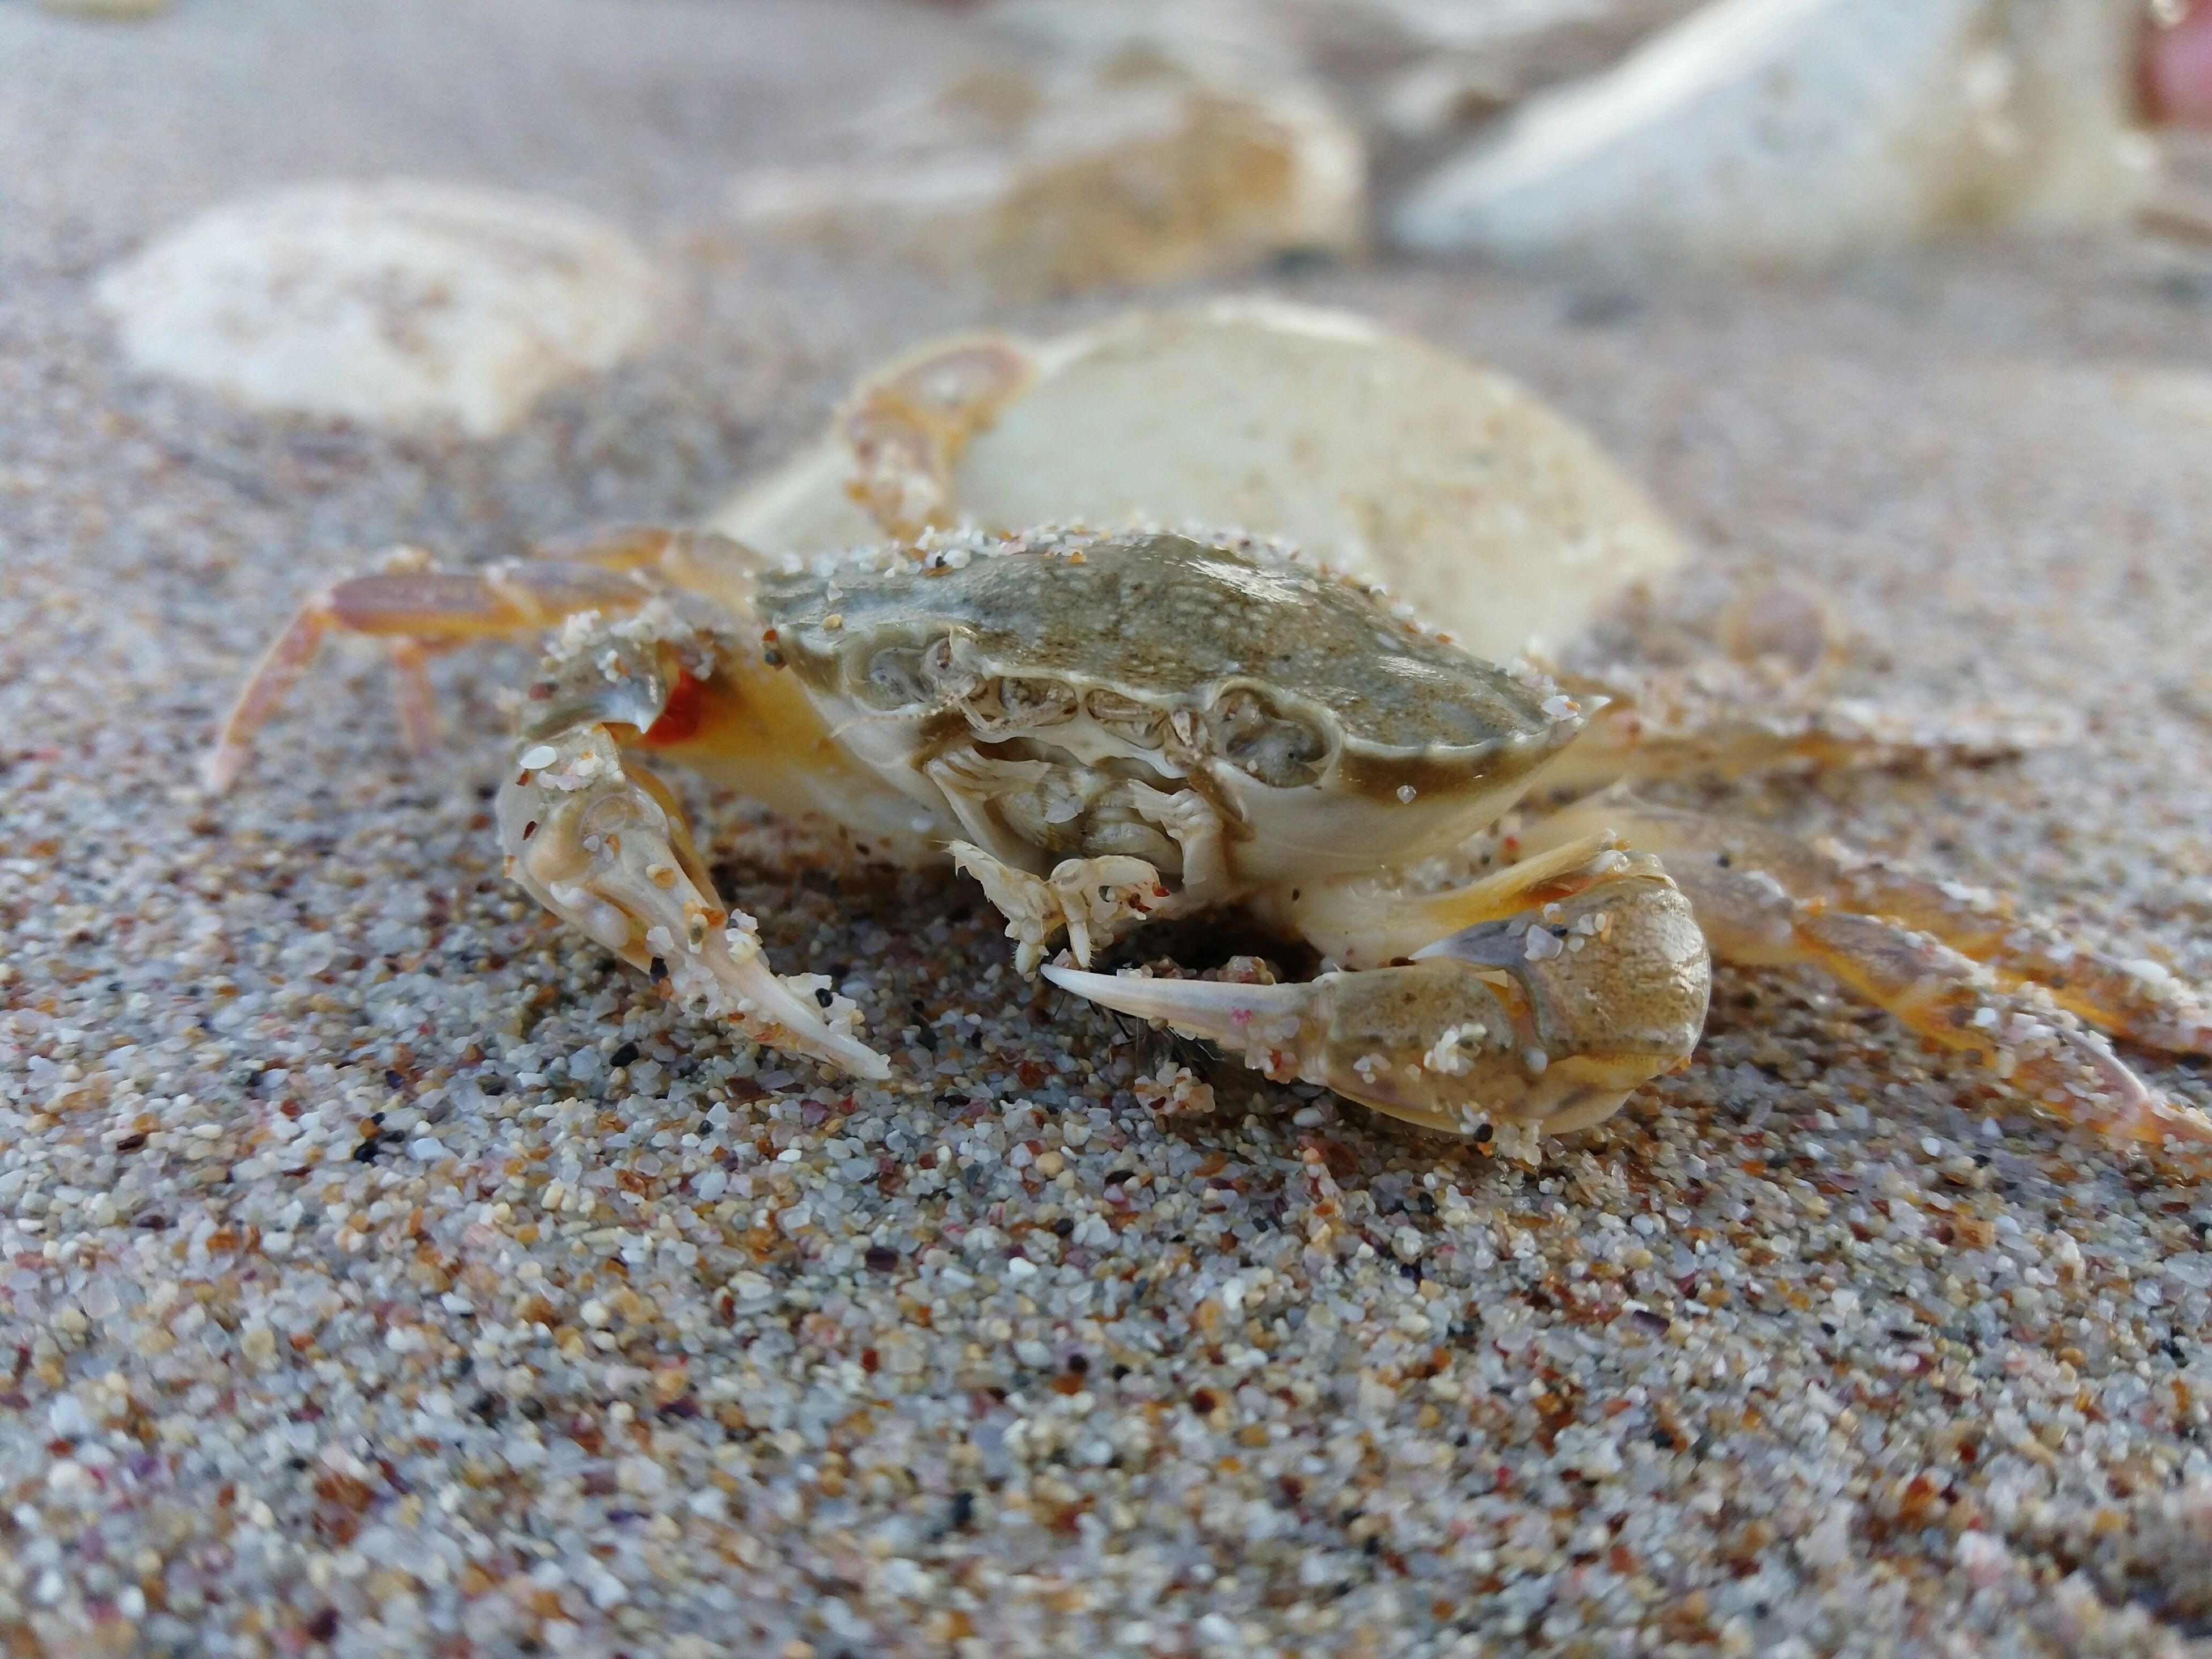 close-up, nature, selective focus, crab, day, outdoors, focus on foreground, no people, shell, amphibian, ground, beauty in nature, starfish